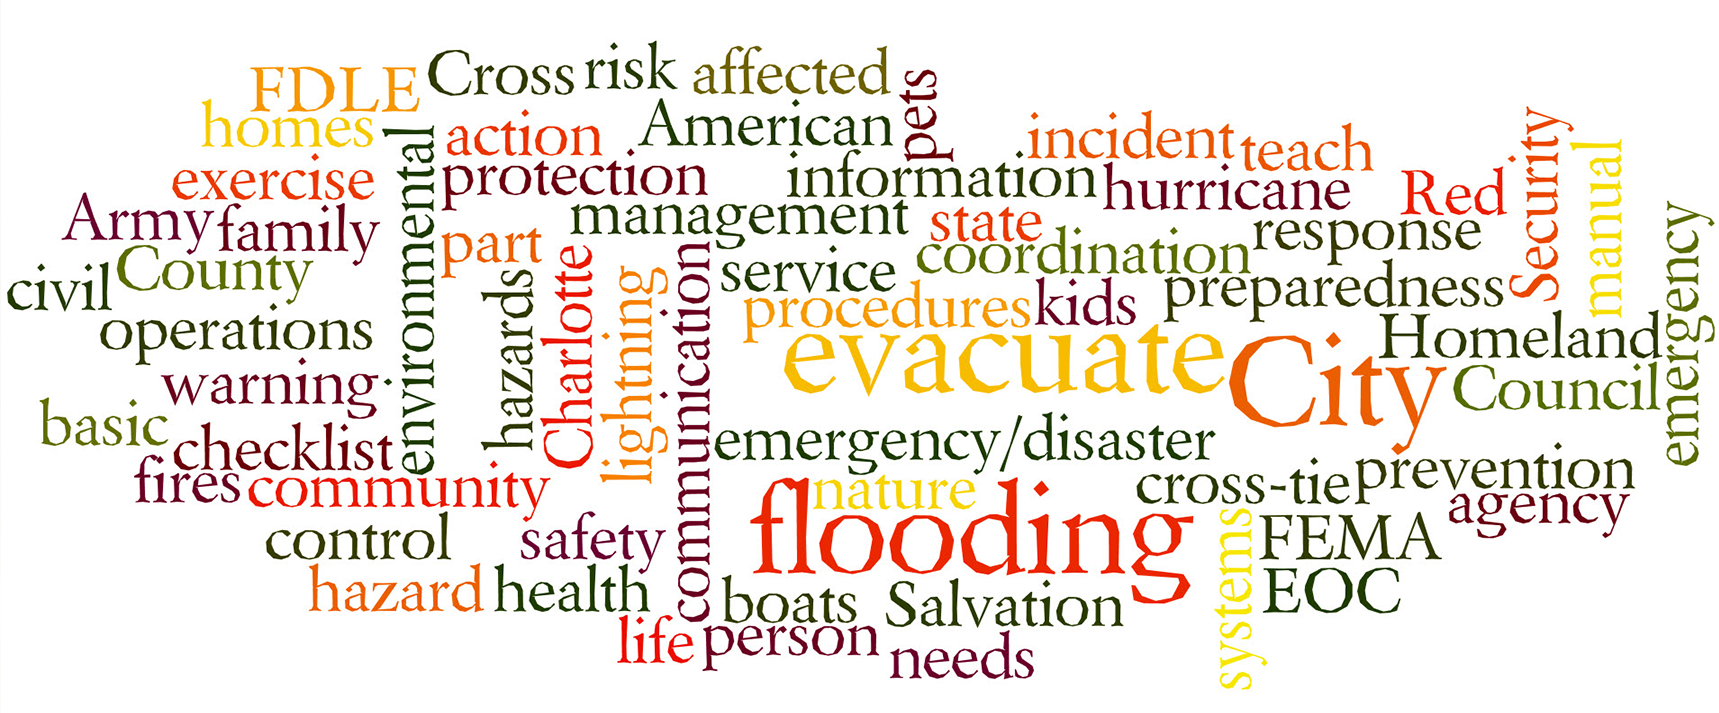 Image of Emergency Preparedness Word Cloud Cover - Key Words